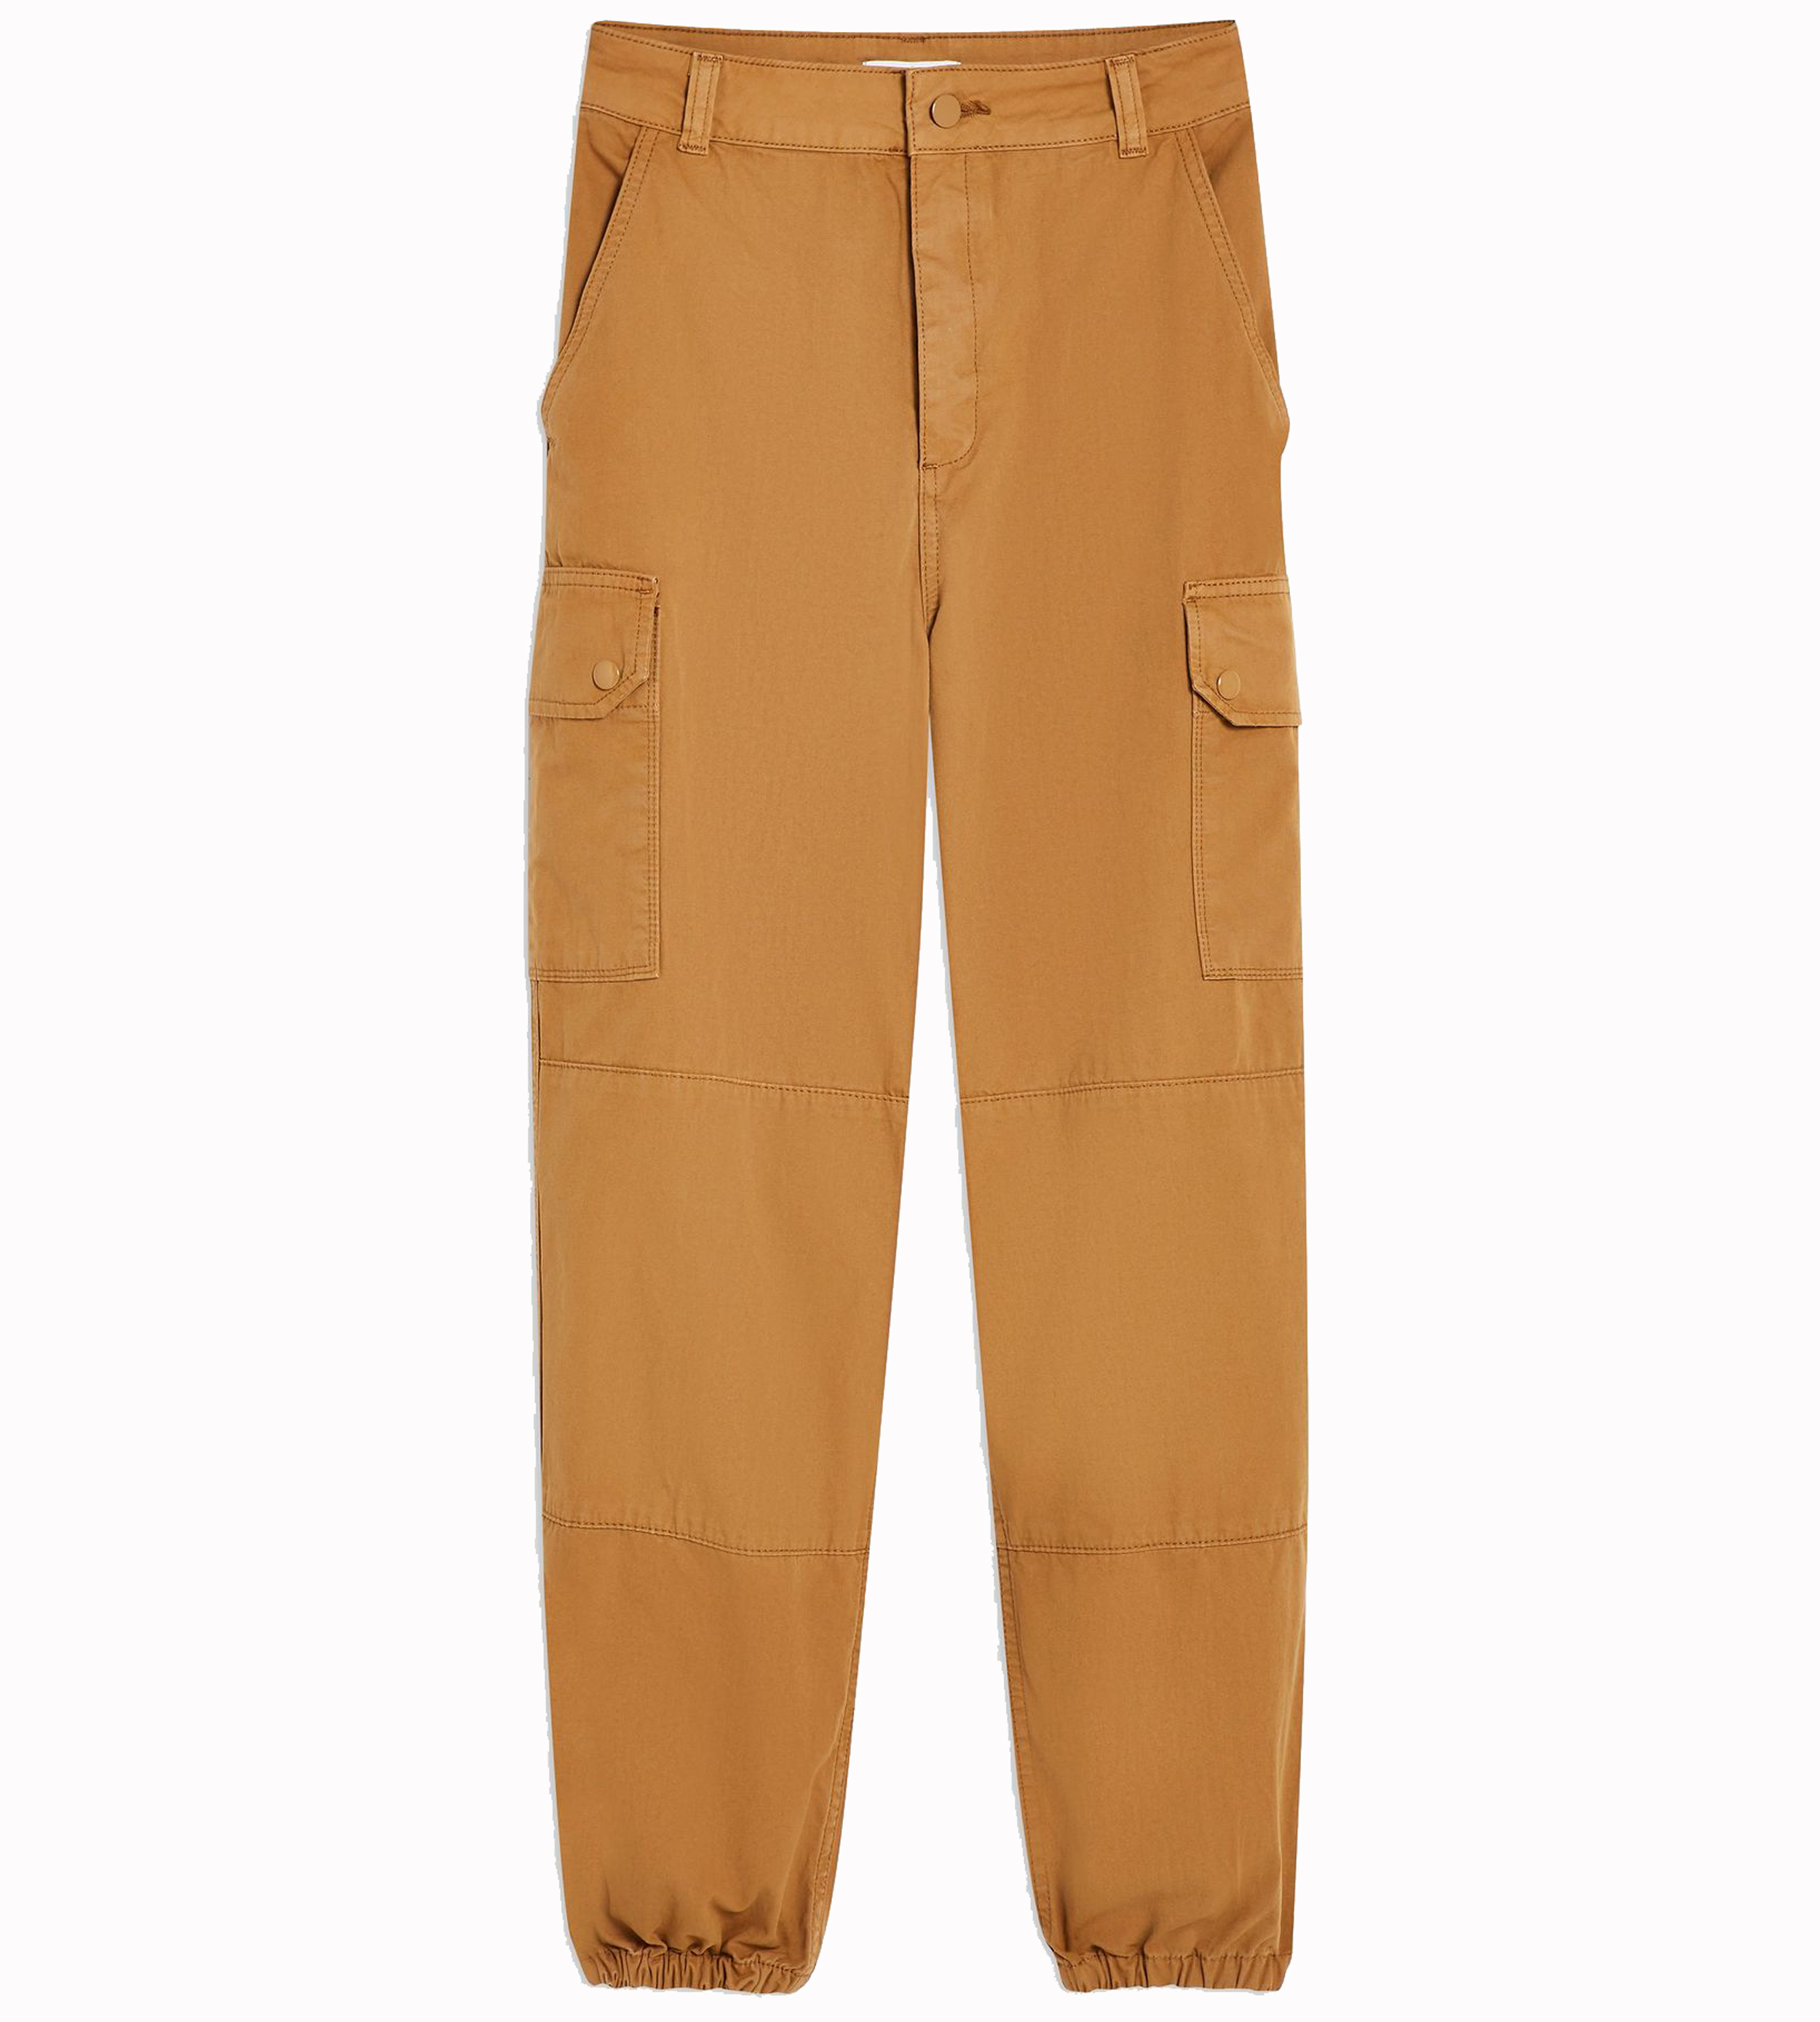 Topshop Stone Cuffed Utility Cargo Trousers